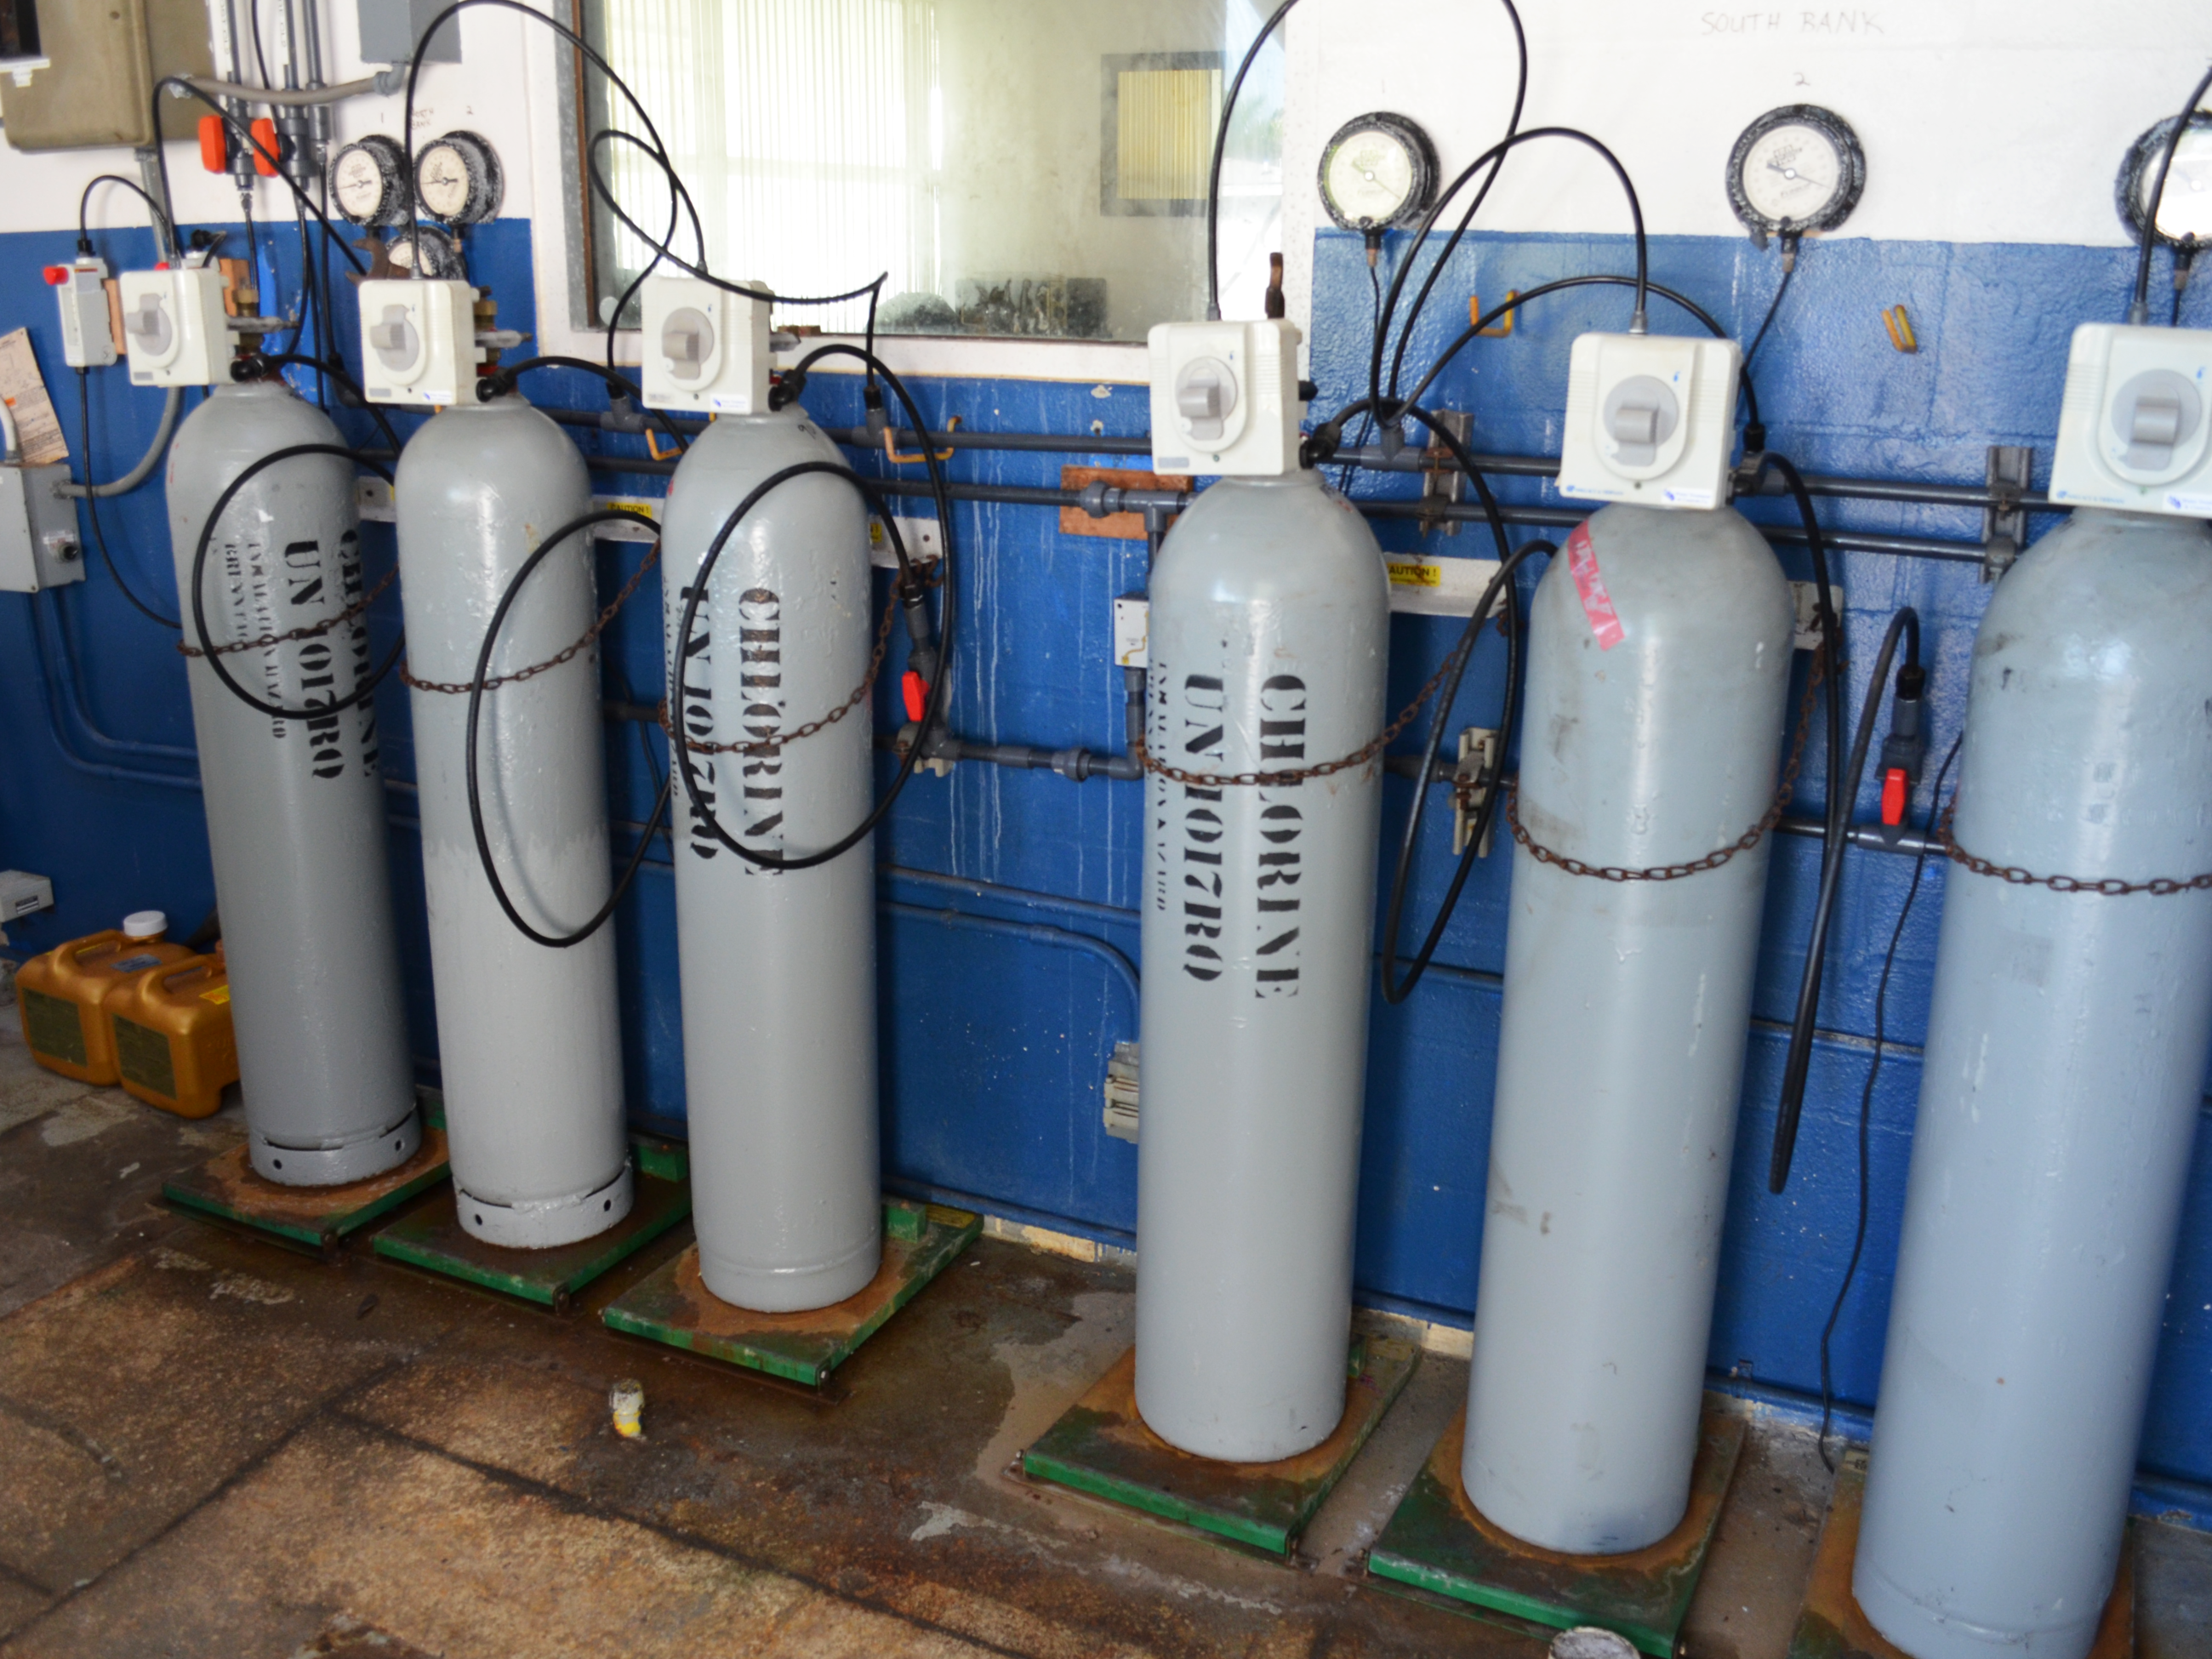 Six silver-colored canisters of chlorine hooked up to the water supply in the water plant.